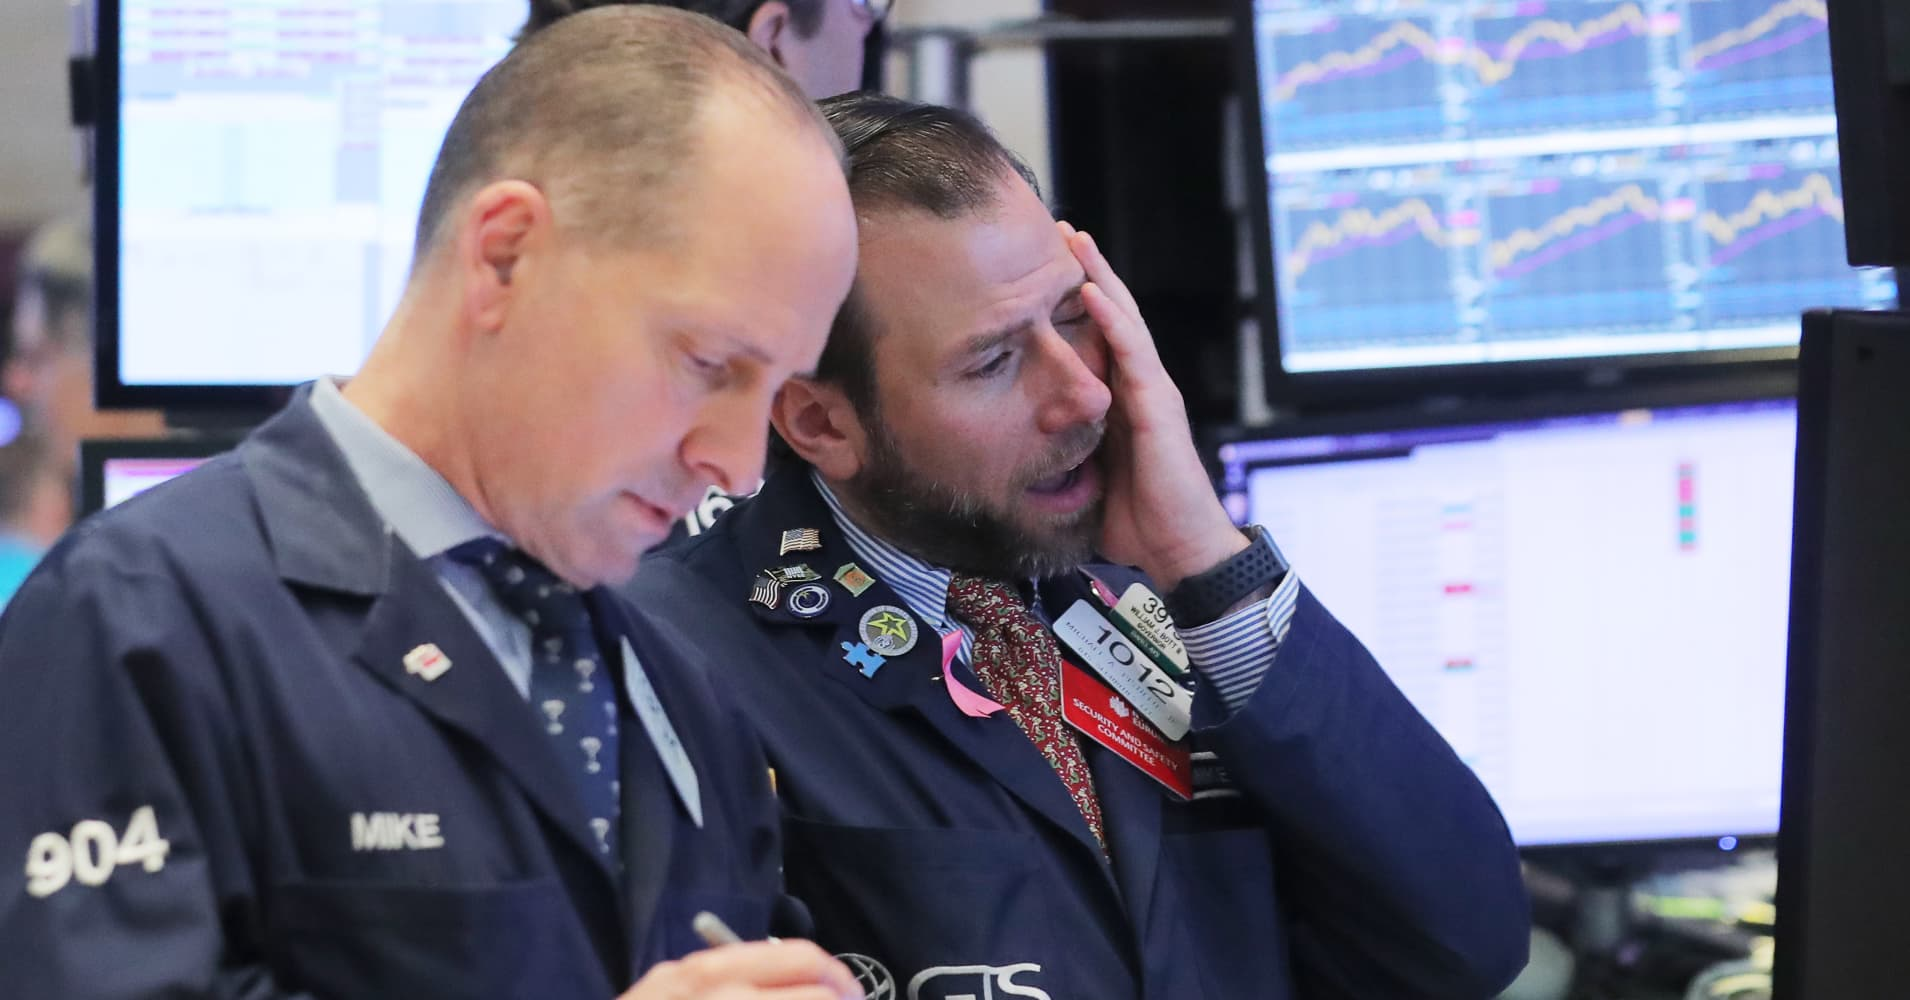 Sell-offs could be down to machines that control 80% of the US stock market, fund manager says